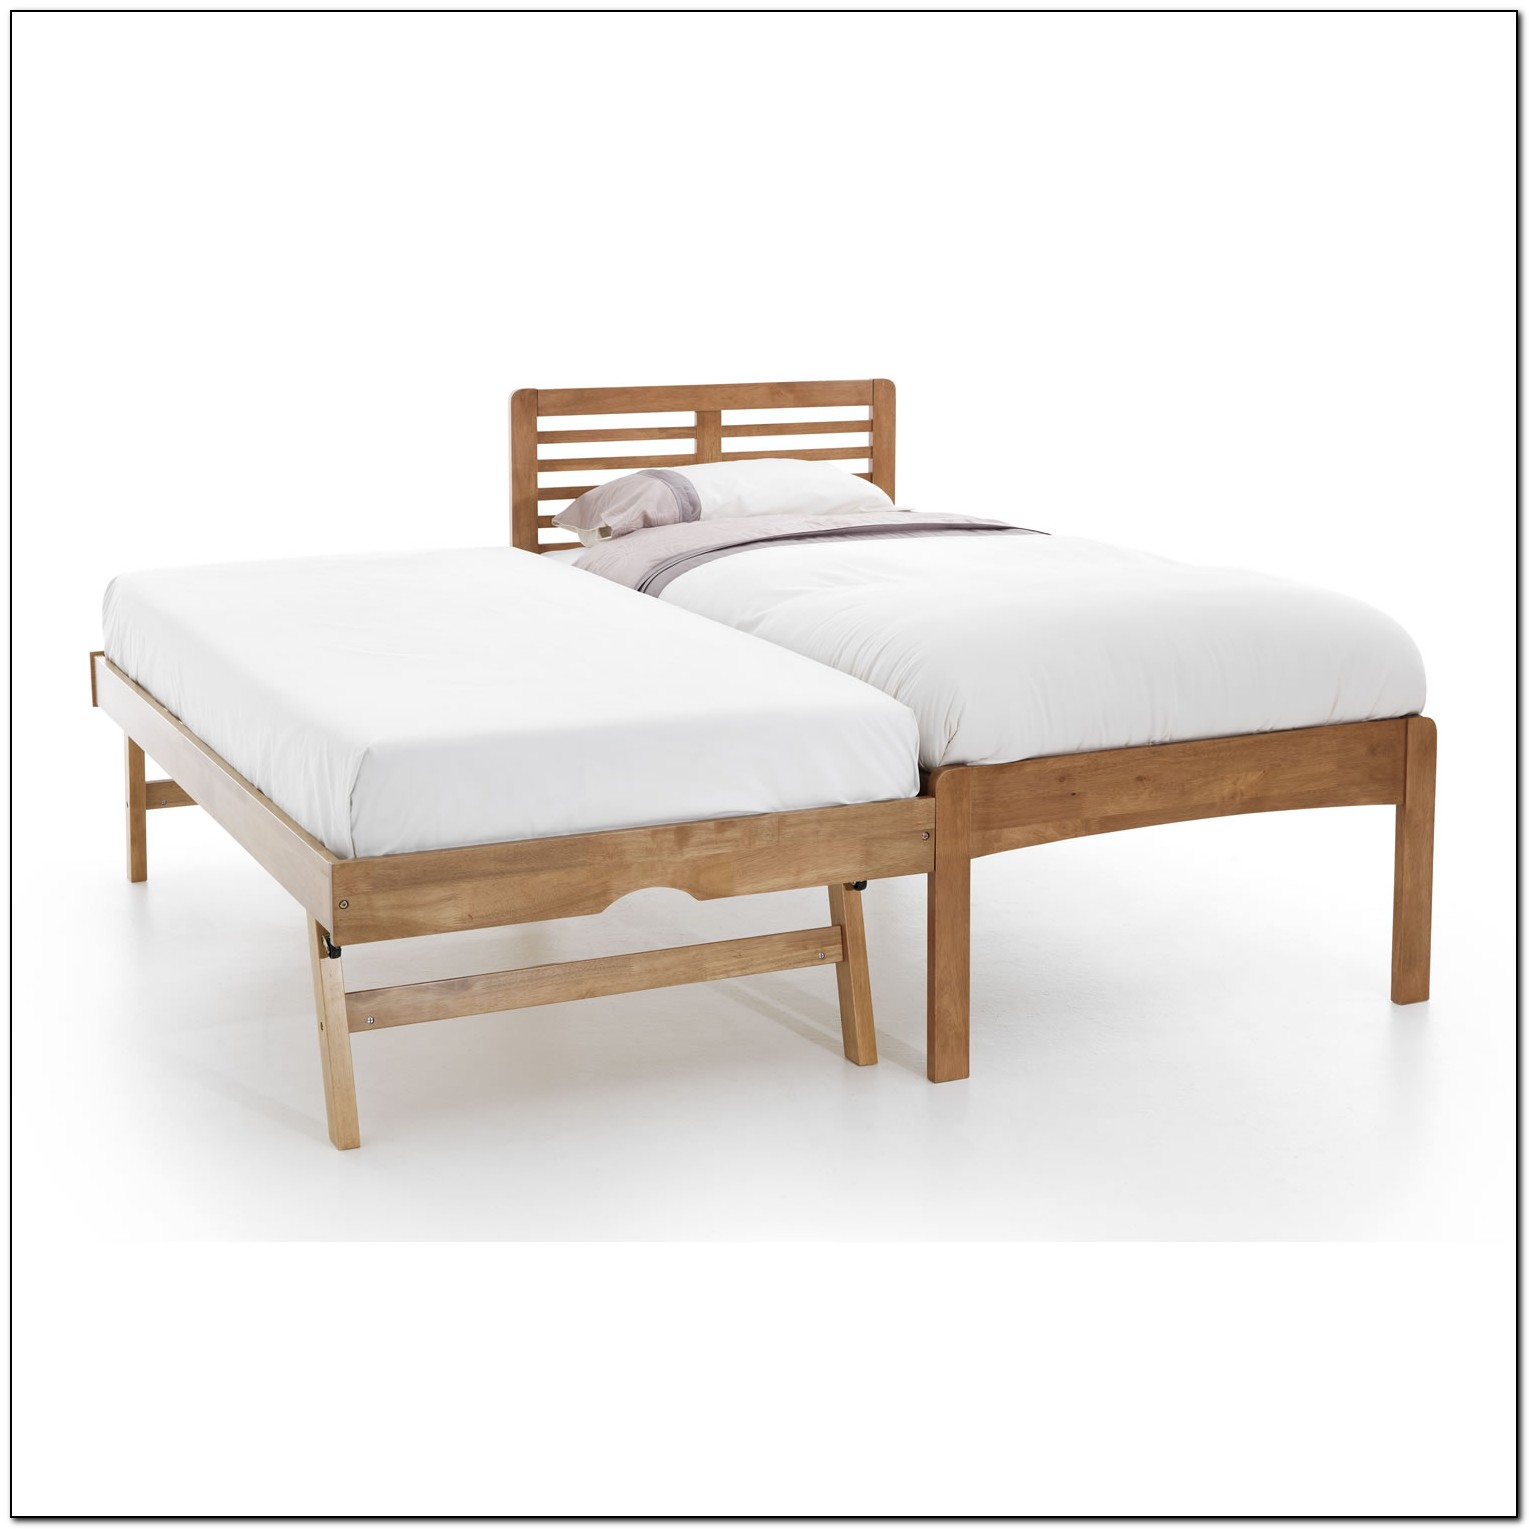 Wooden Trundle Bed Frame